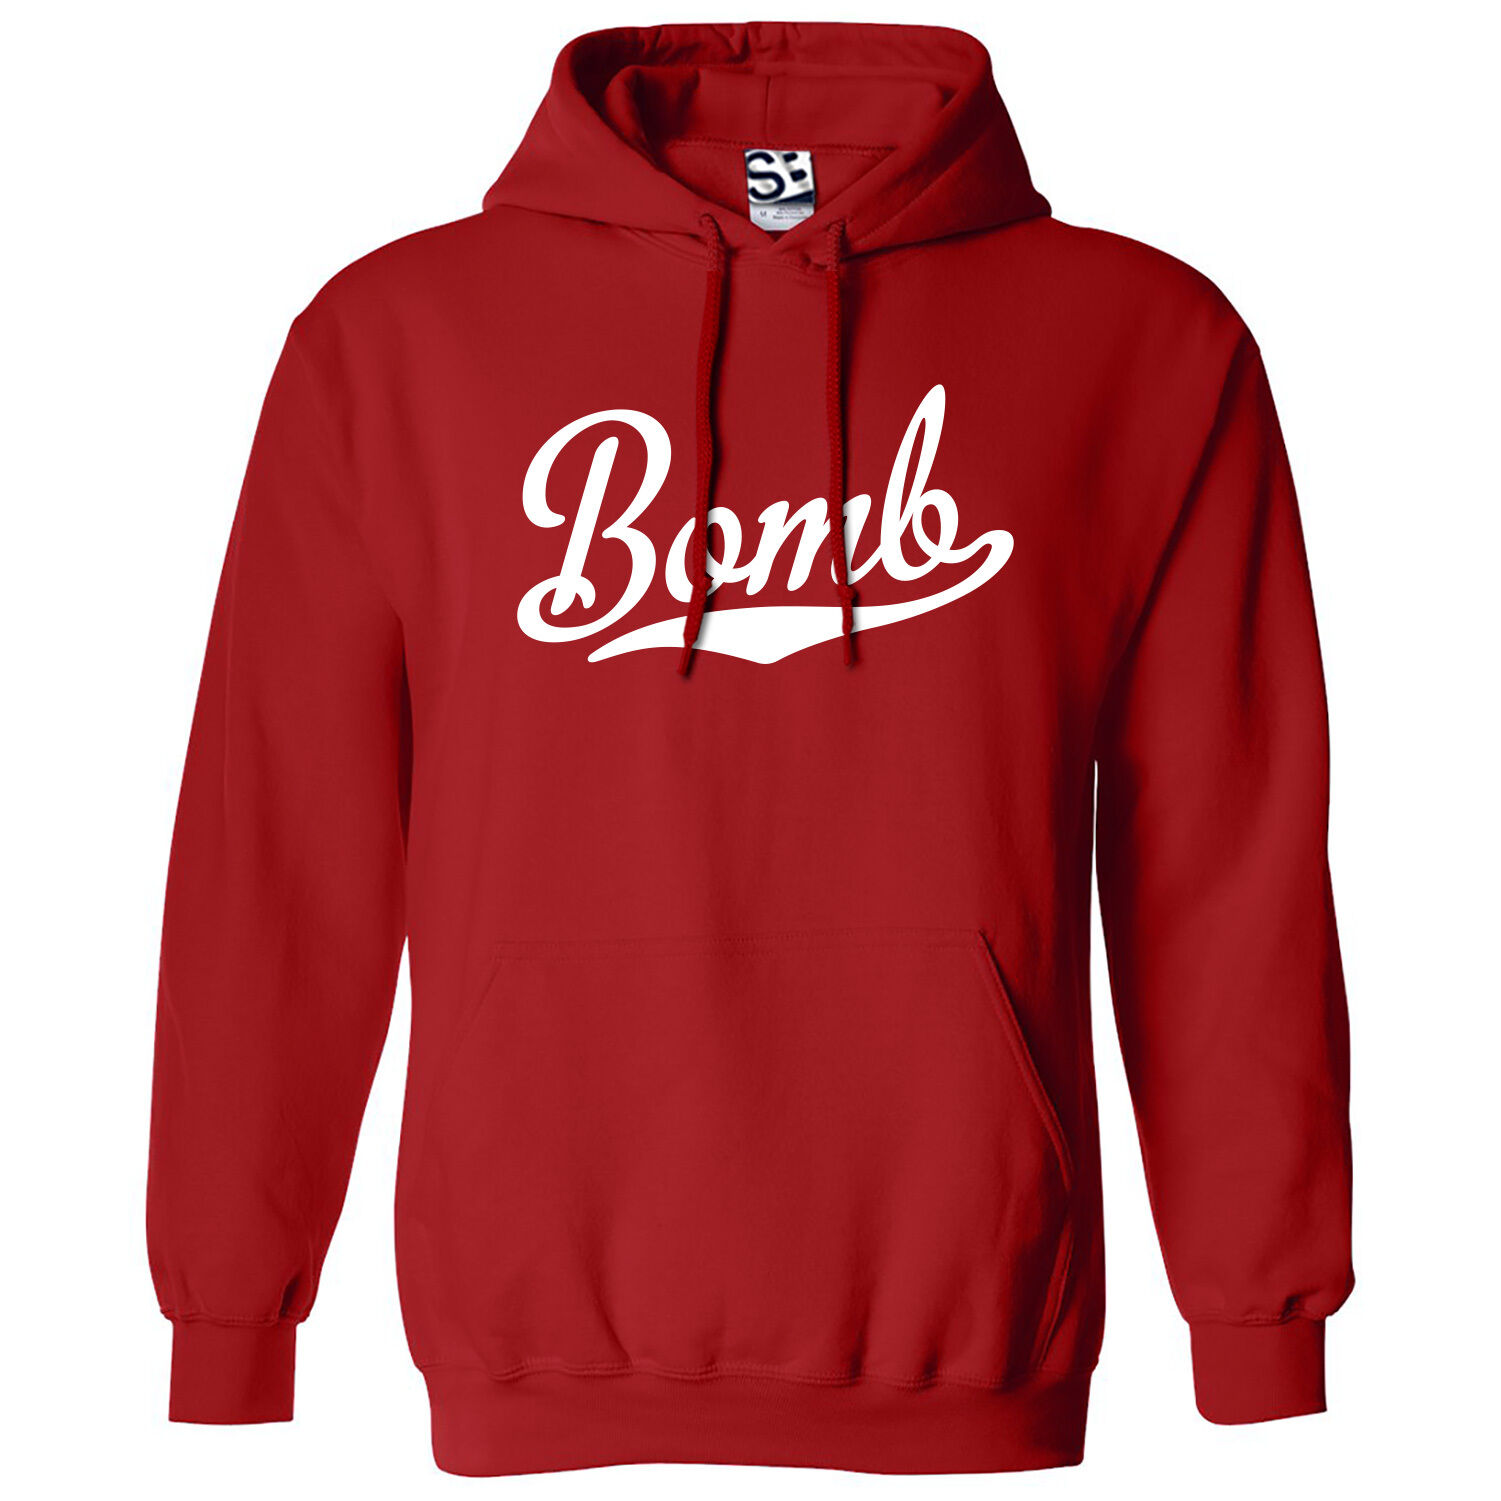 Bomb Script & Tail HOODIE - Hooded Niedrigrider Fleetline Niedrig Sweatshirt  All Farbes